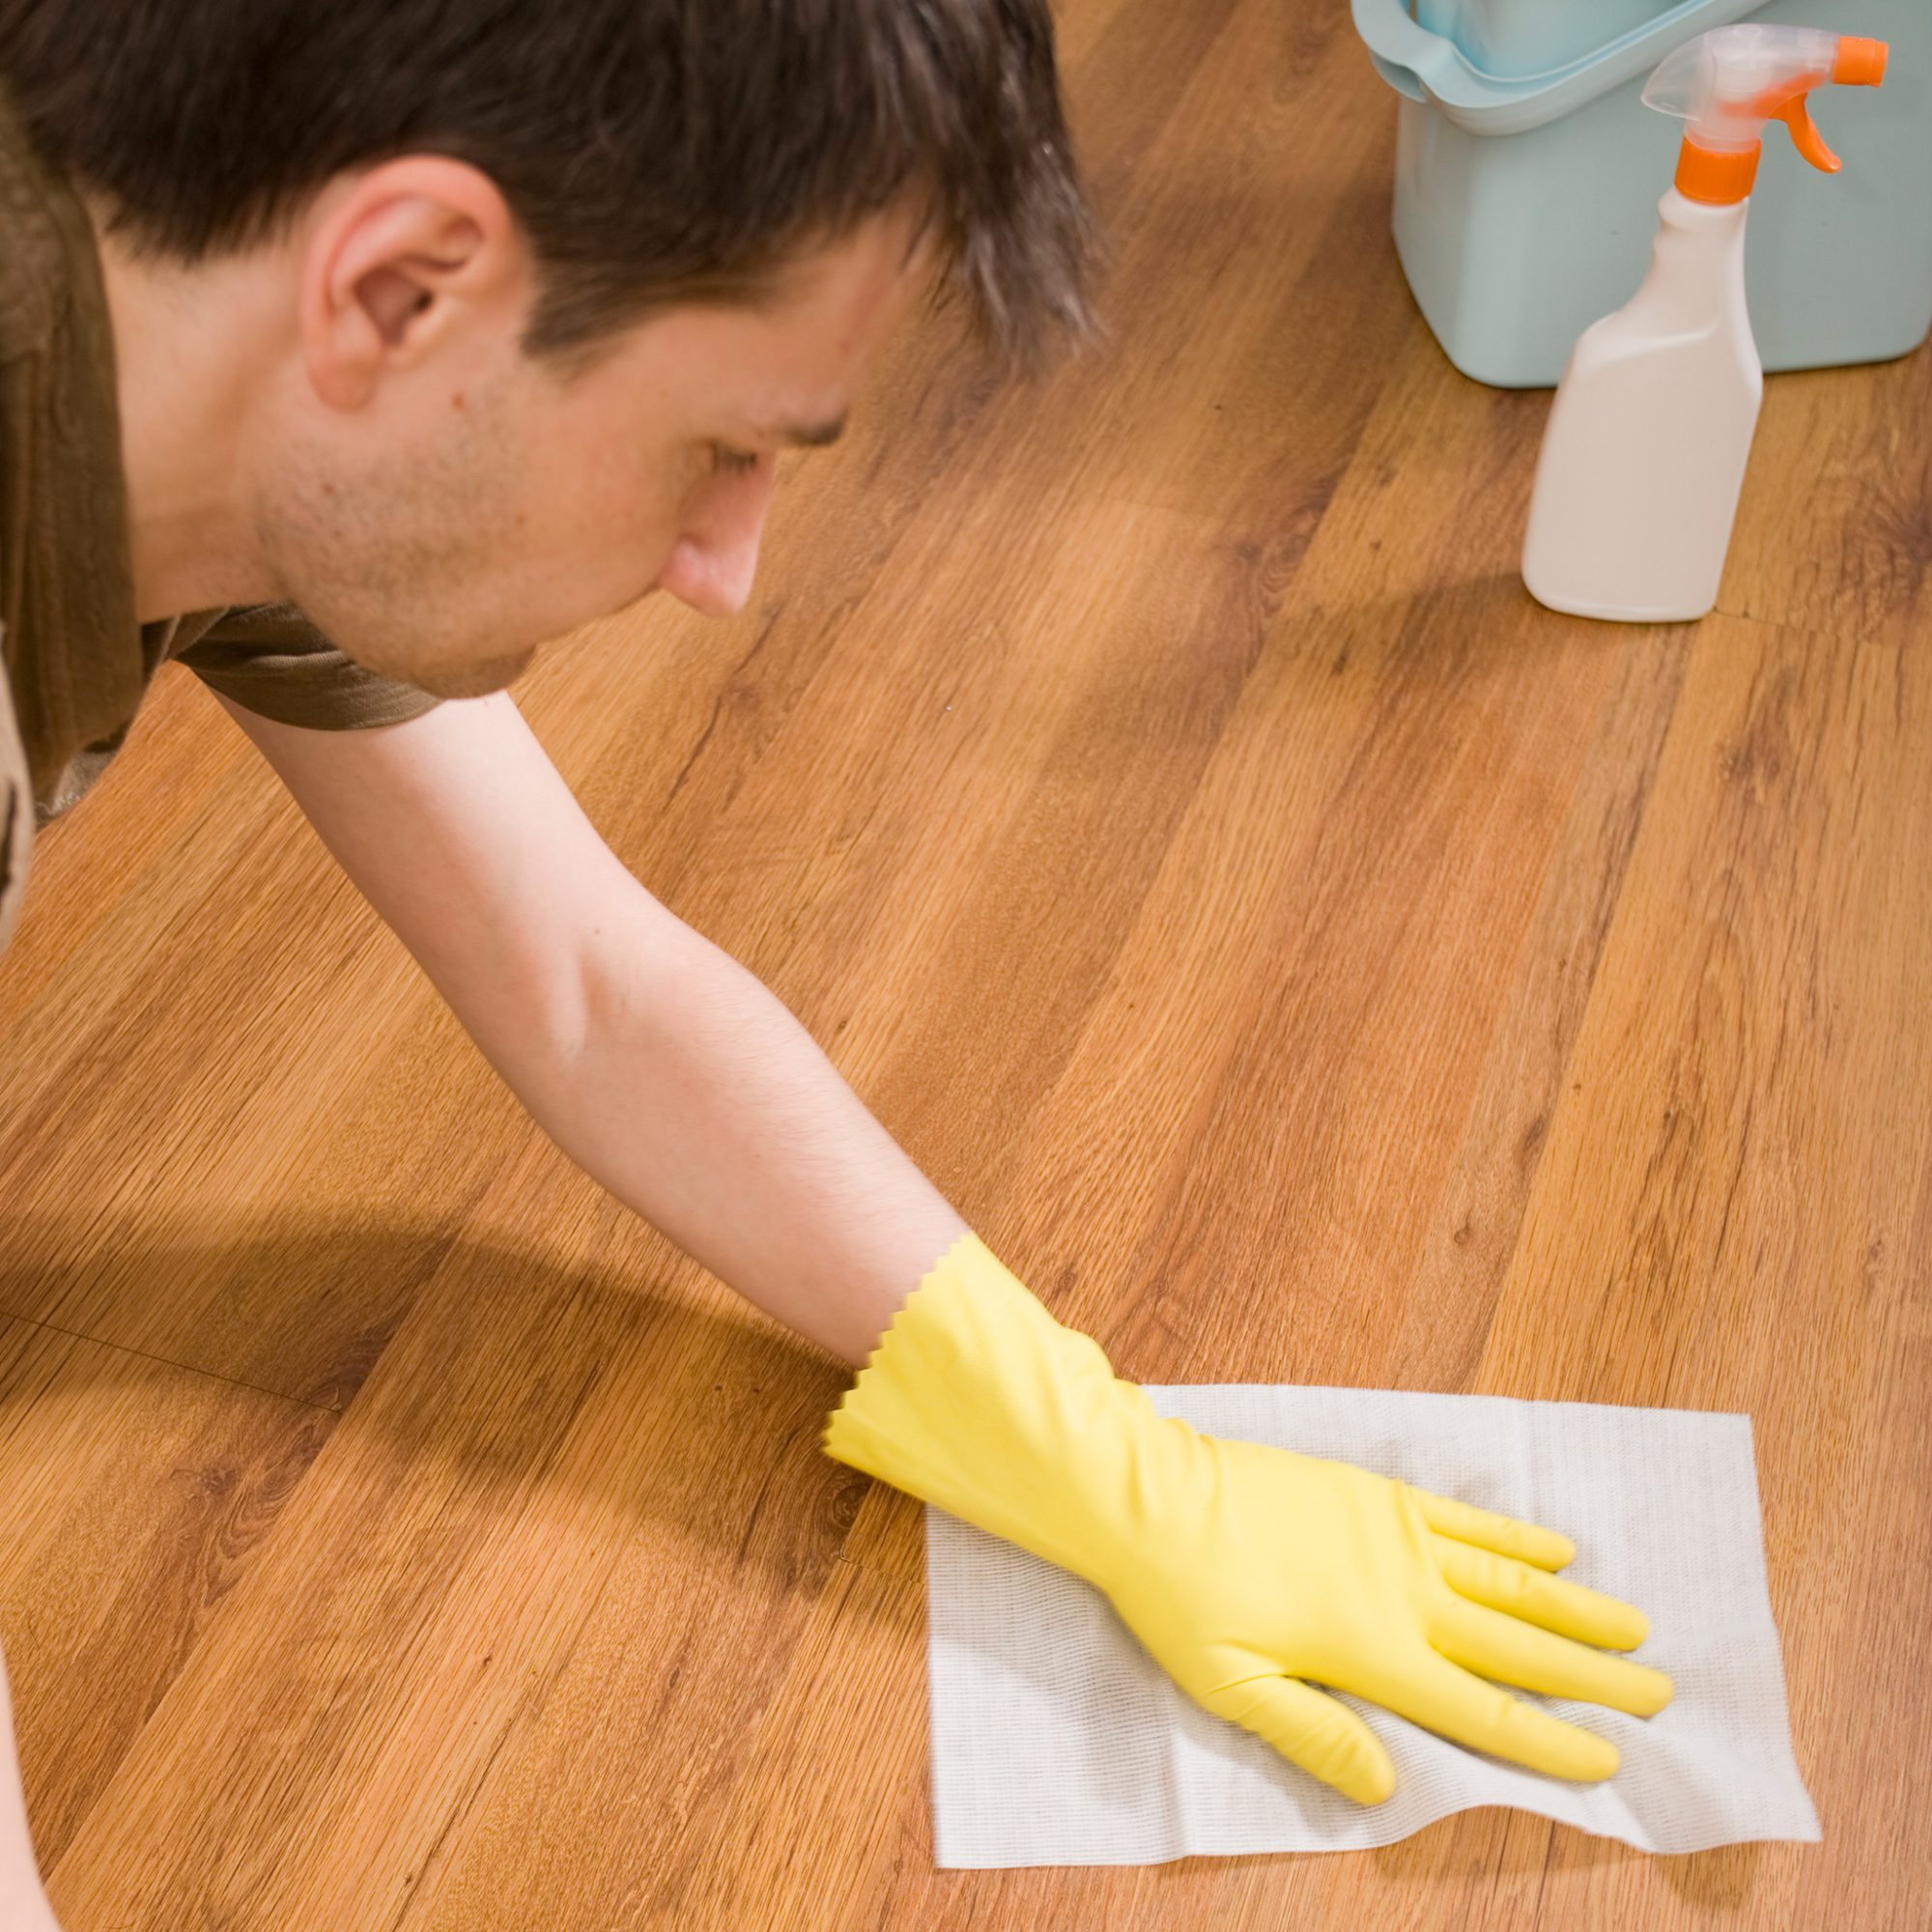 FWX CLEANING THE HOUSE WITH ALTERNATIVE CLEANERS